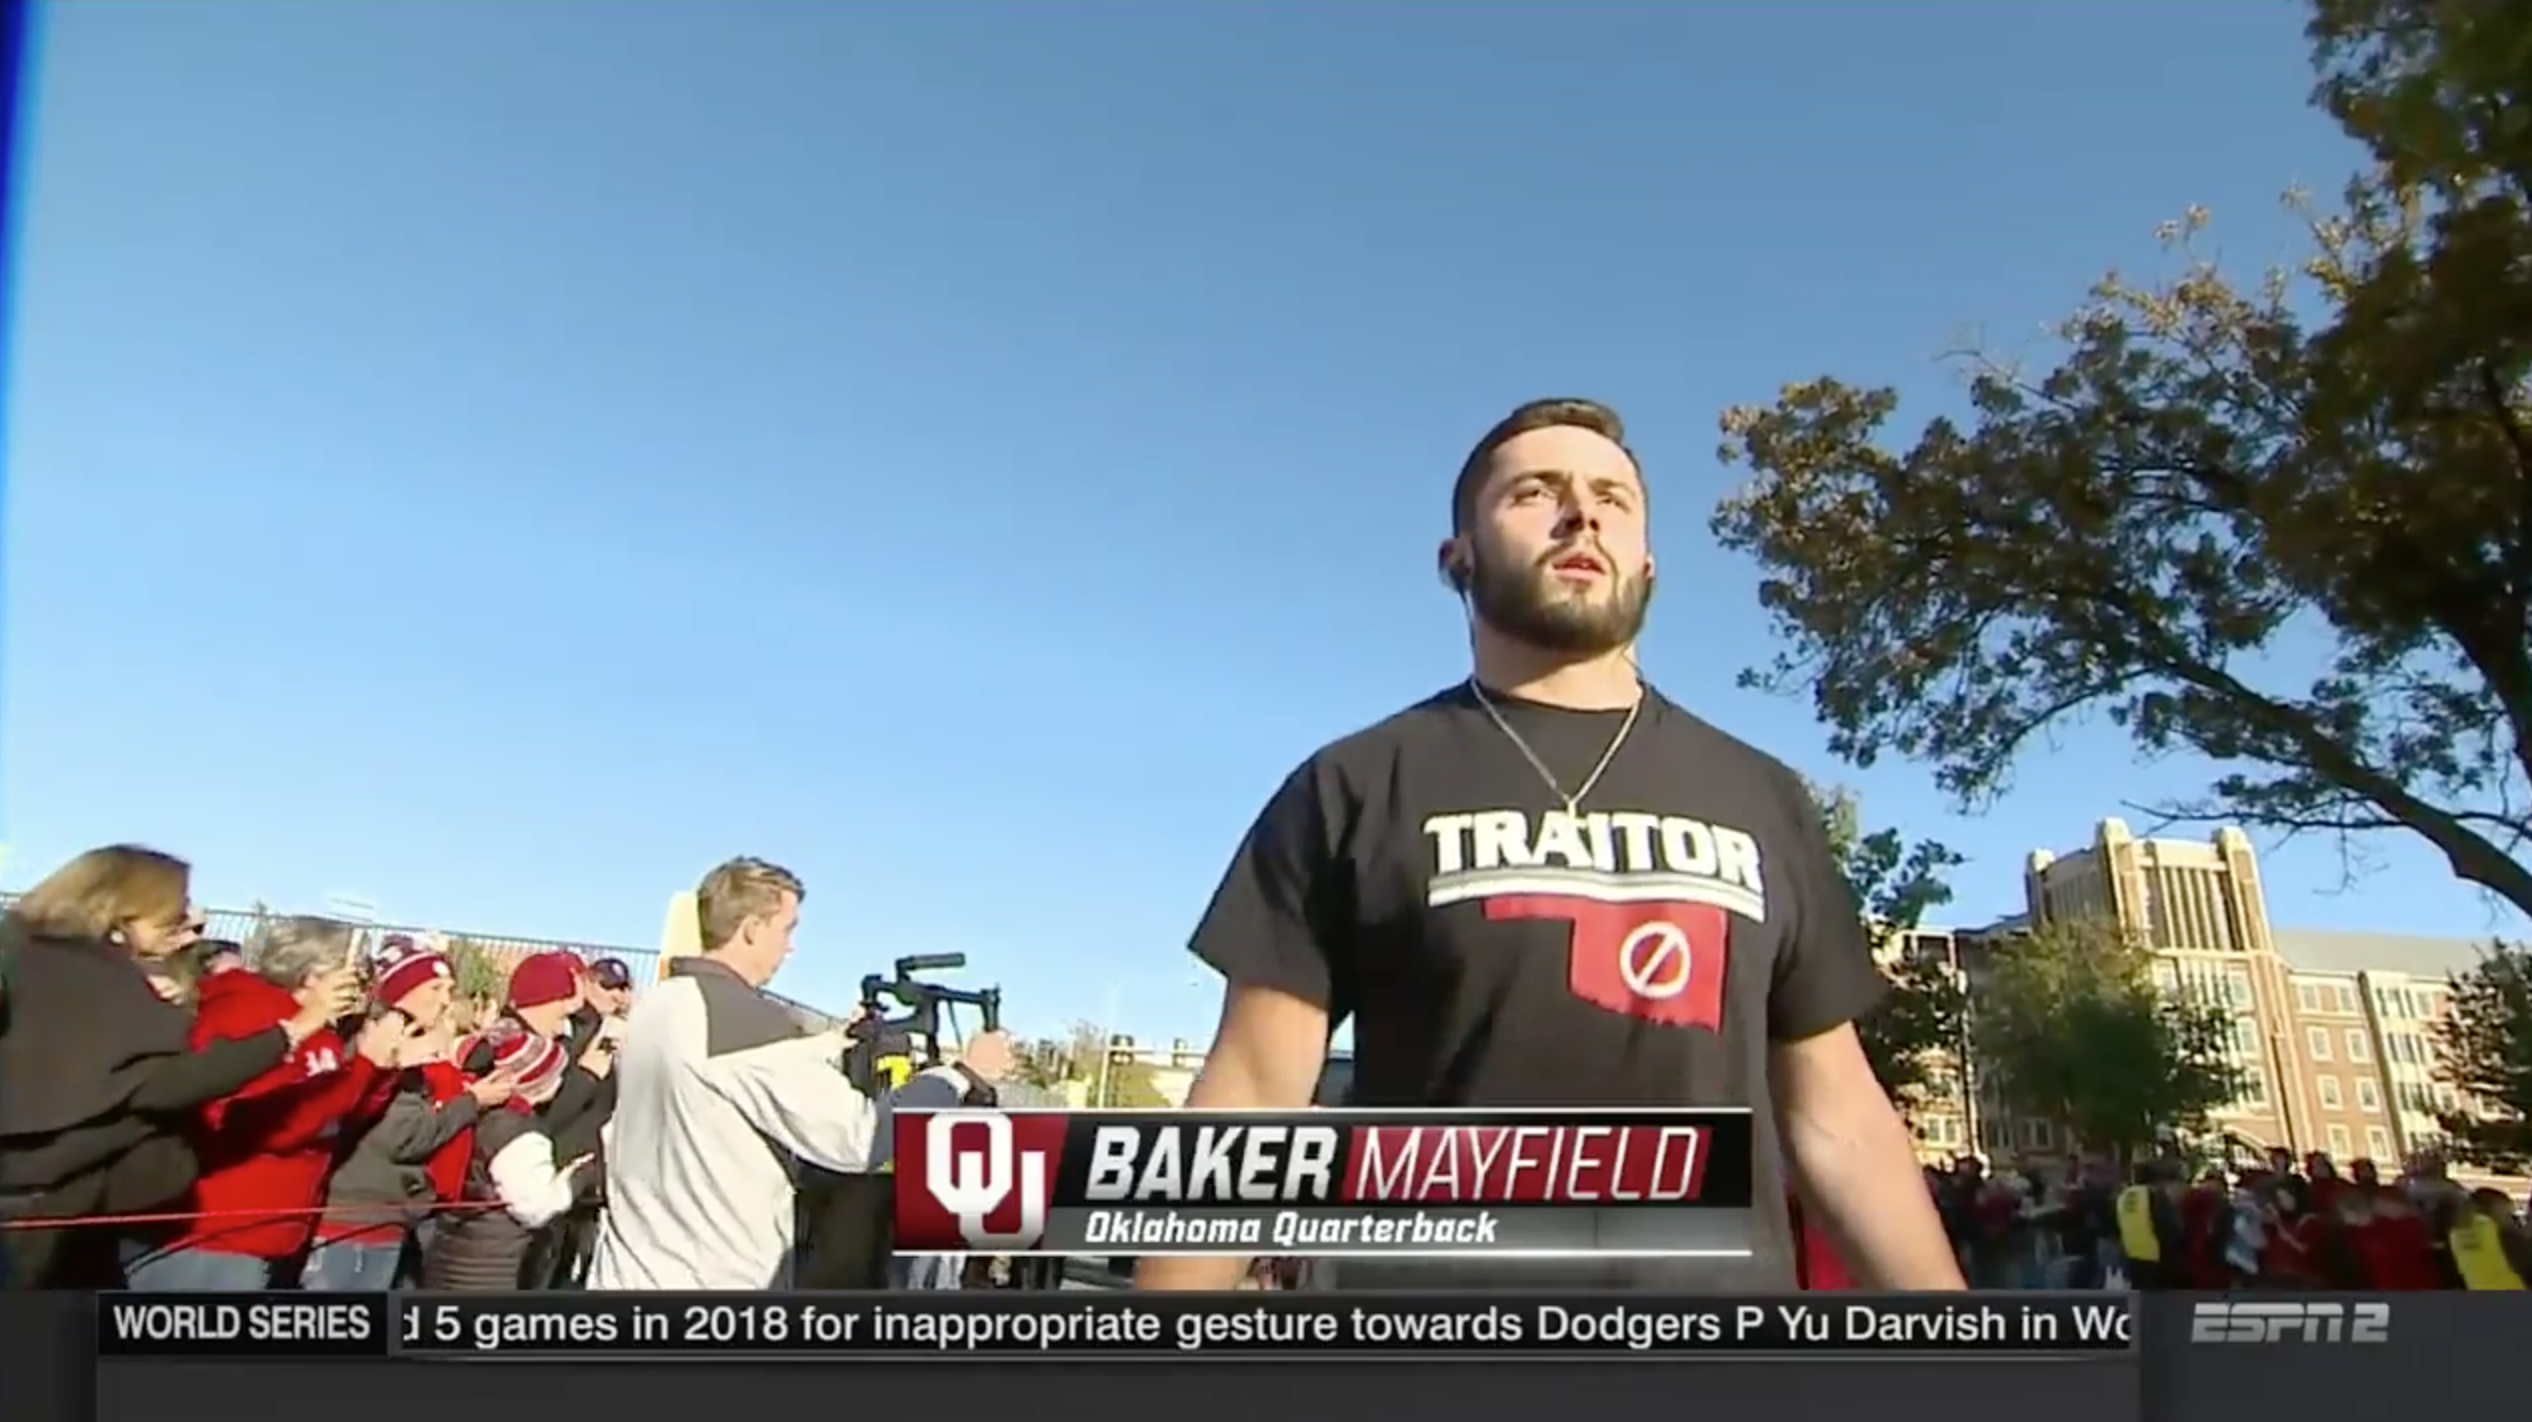 Baker Mayfield shirt: Oklahoma QB trolls Texas Tech fans